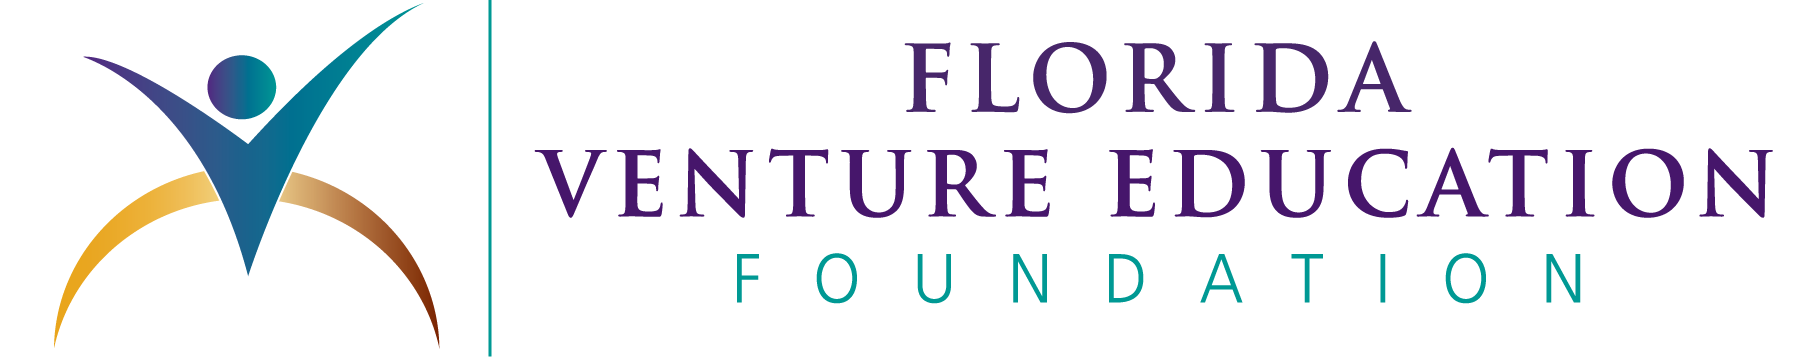 Florida Venture Education Foundation